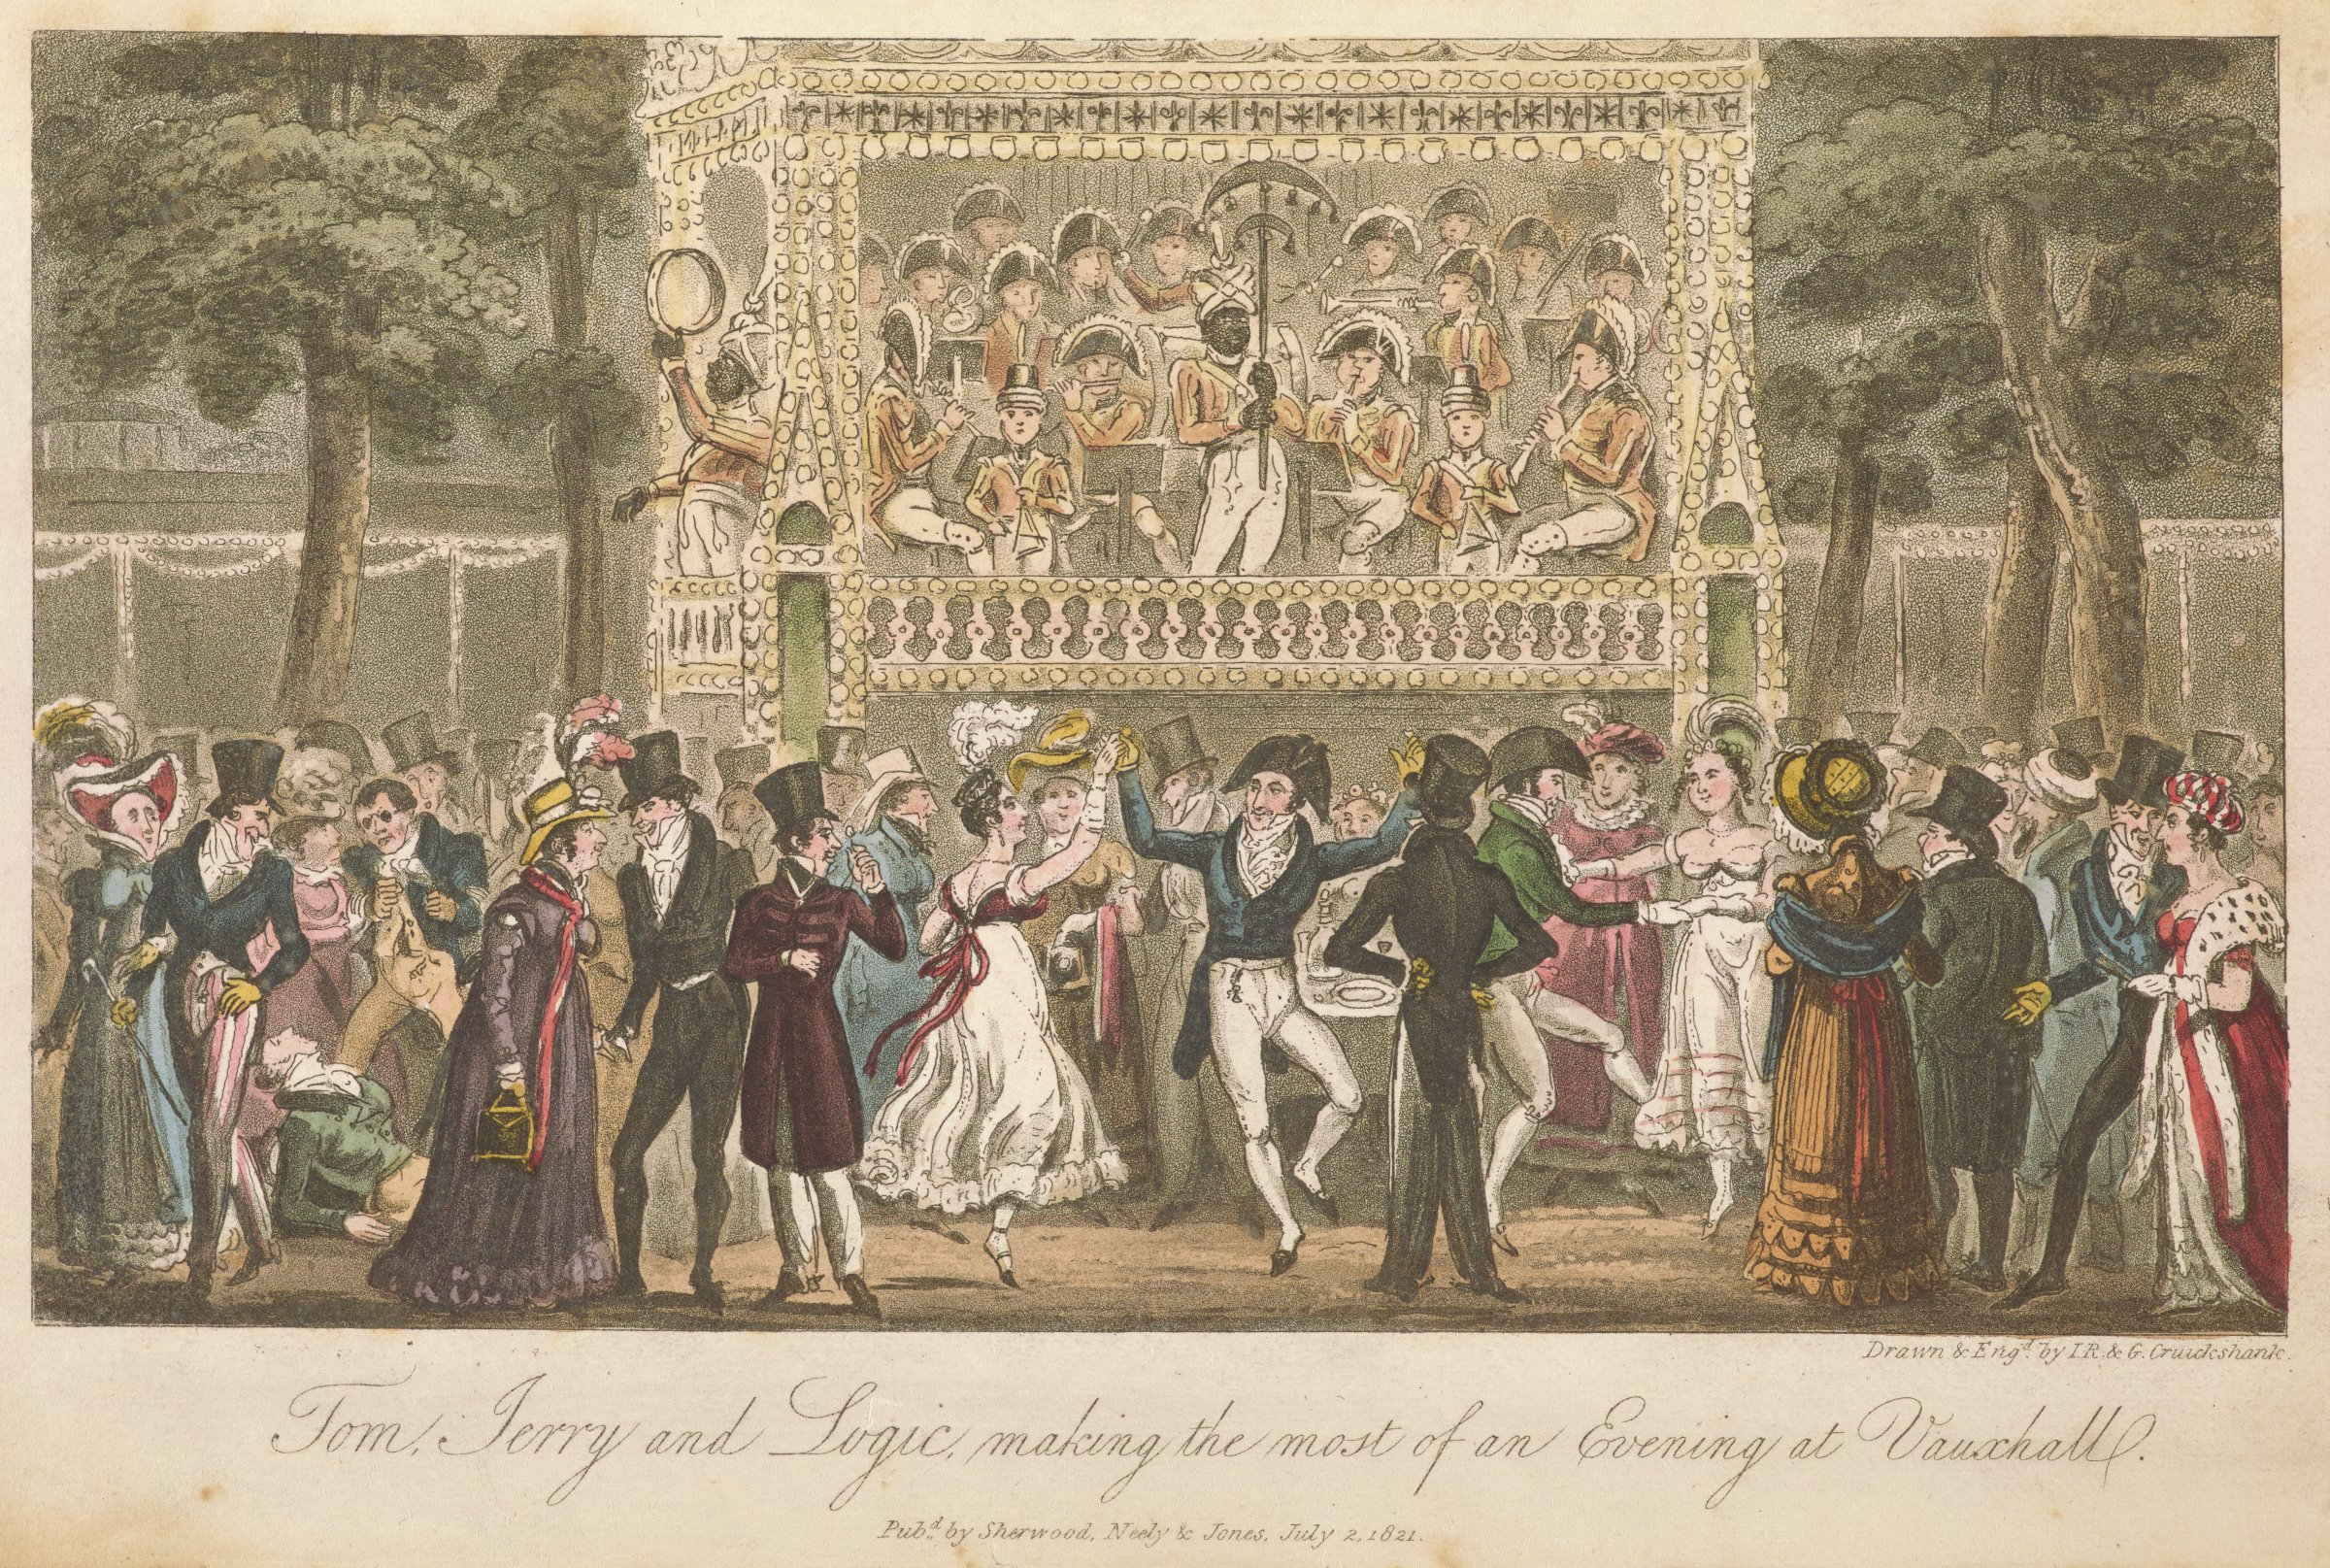 Outdoor scene of ladies and gentlemen dancing with a fight between two men on the left and a band playing on a stage behind. In the lower left corner, a man (Logic?) knocks another to the ground.